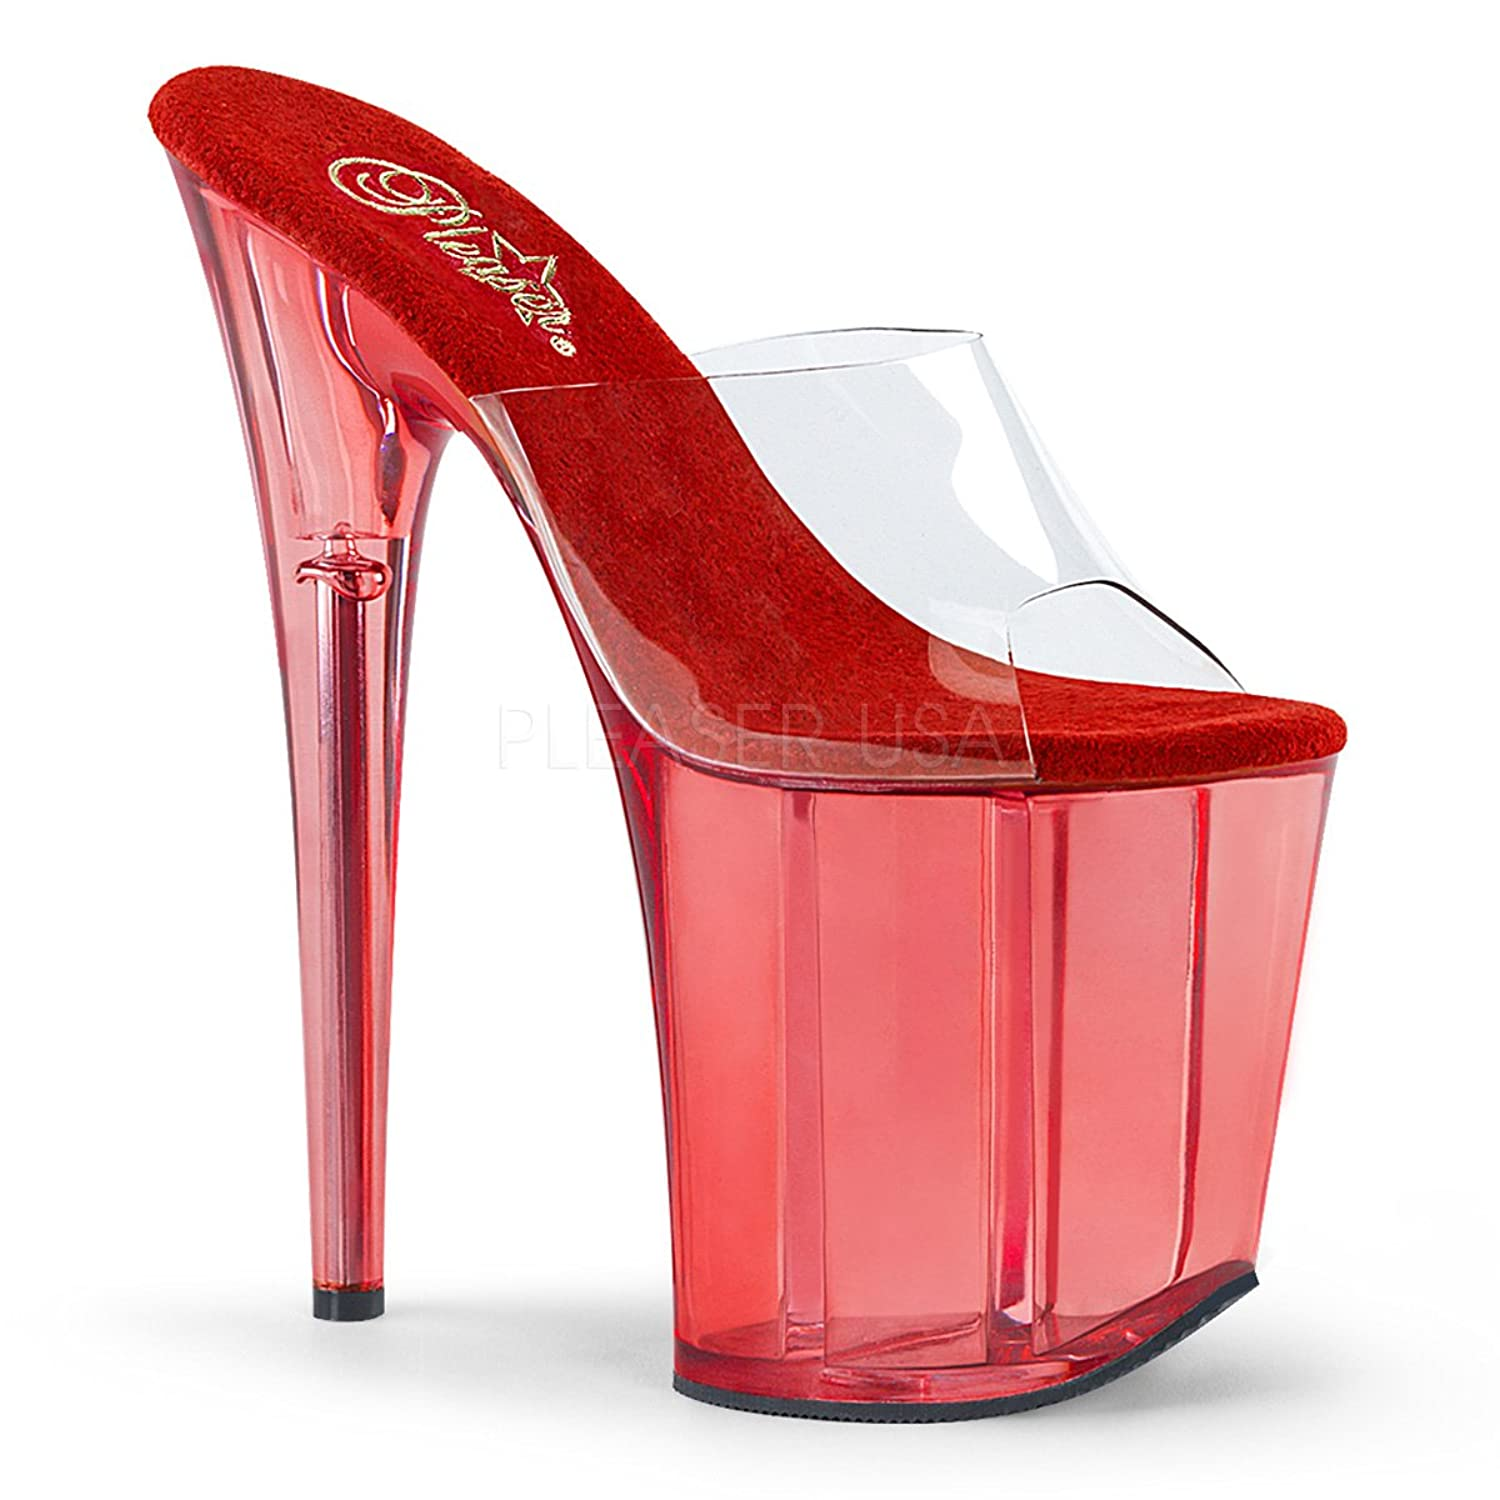 PLEASER FLAMINGO-801T Clear Red Tinted High Heel Exotic Dance Platform Slide